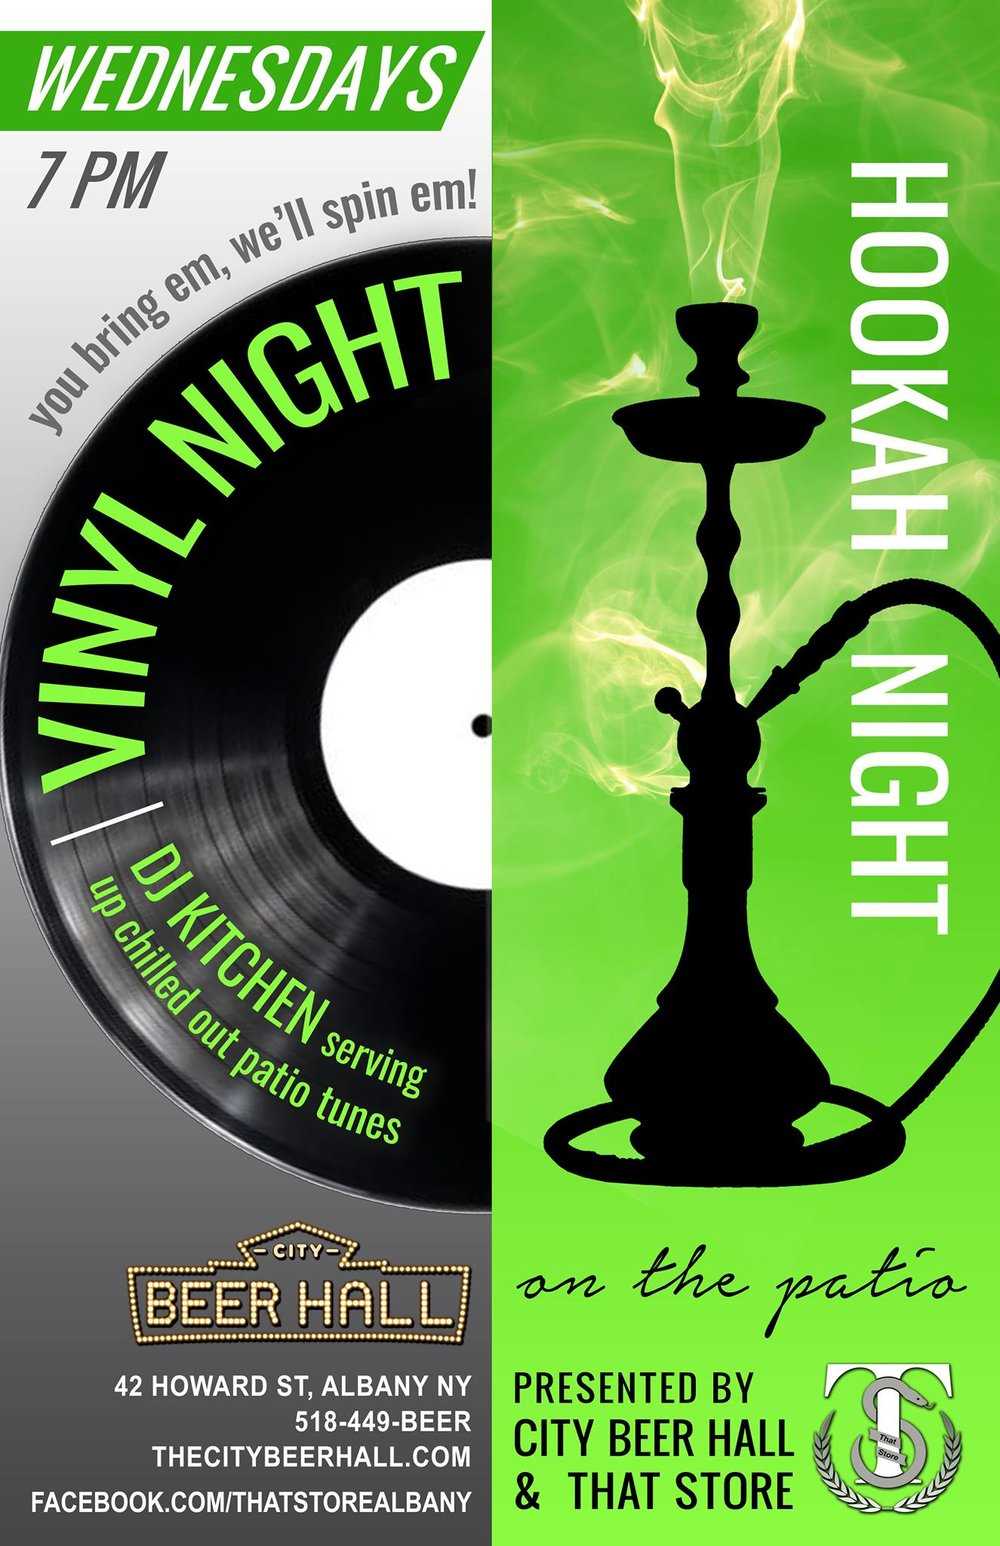 - CANCELLED DUE TO RAINEvery Wednesday we'll be offering Hookah courtesy of That Store on our beautiful outdoor patio.Wednesday is also our Vinyl Night-- bring your own vinyl's and DJ kitchen will spin 'em for you!Come eat some gastropub fare, drink good beer, smoke some hookah, & listen to chill tunes in our little downtown Albany urban oasis.Weather permitting, please call ahead to confirm if the weather is questionable. Hookah is first come, first serve. Hope to see you all there!